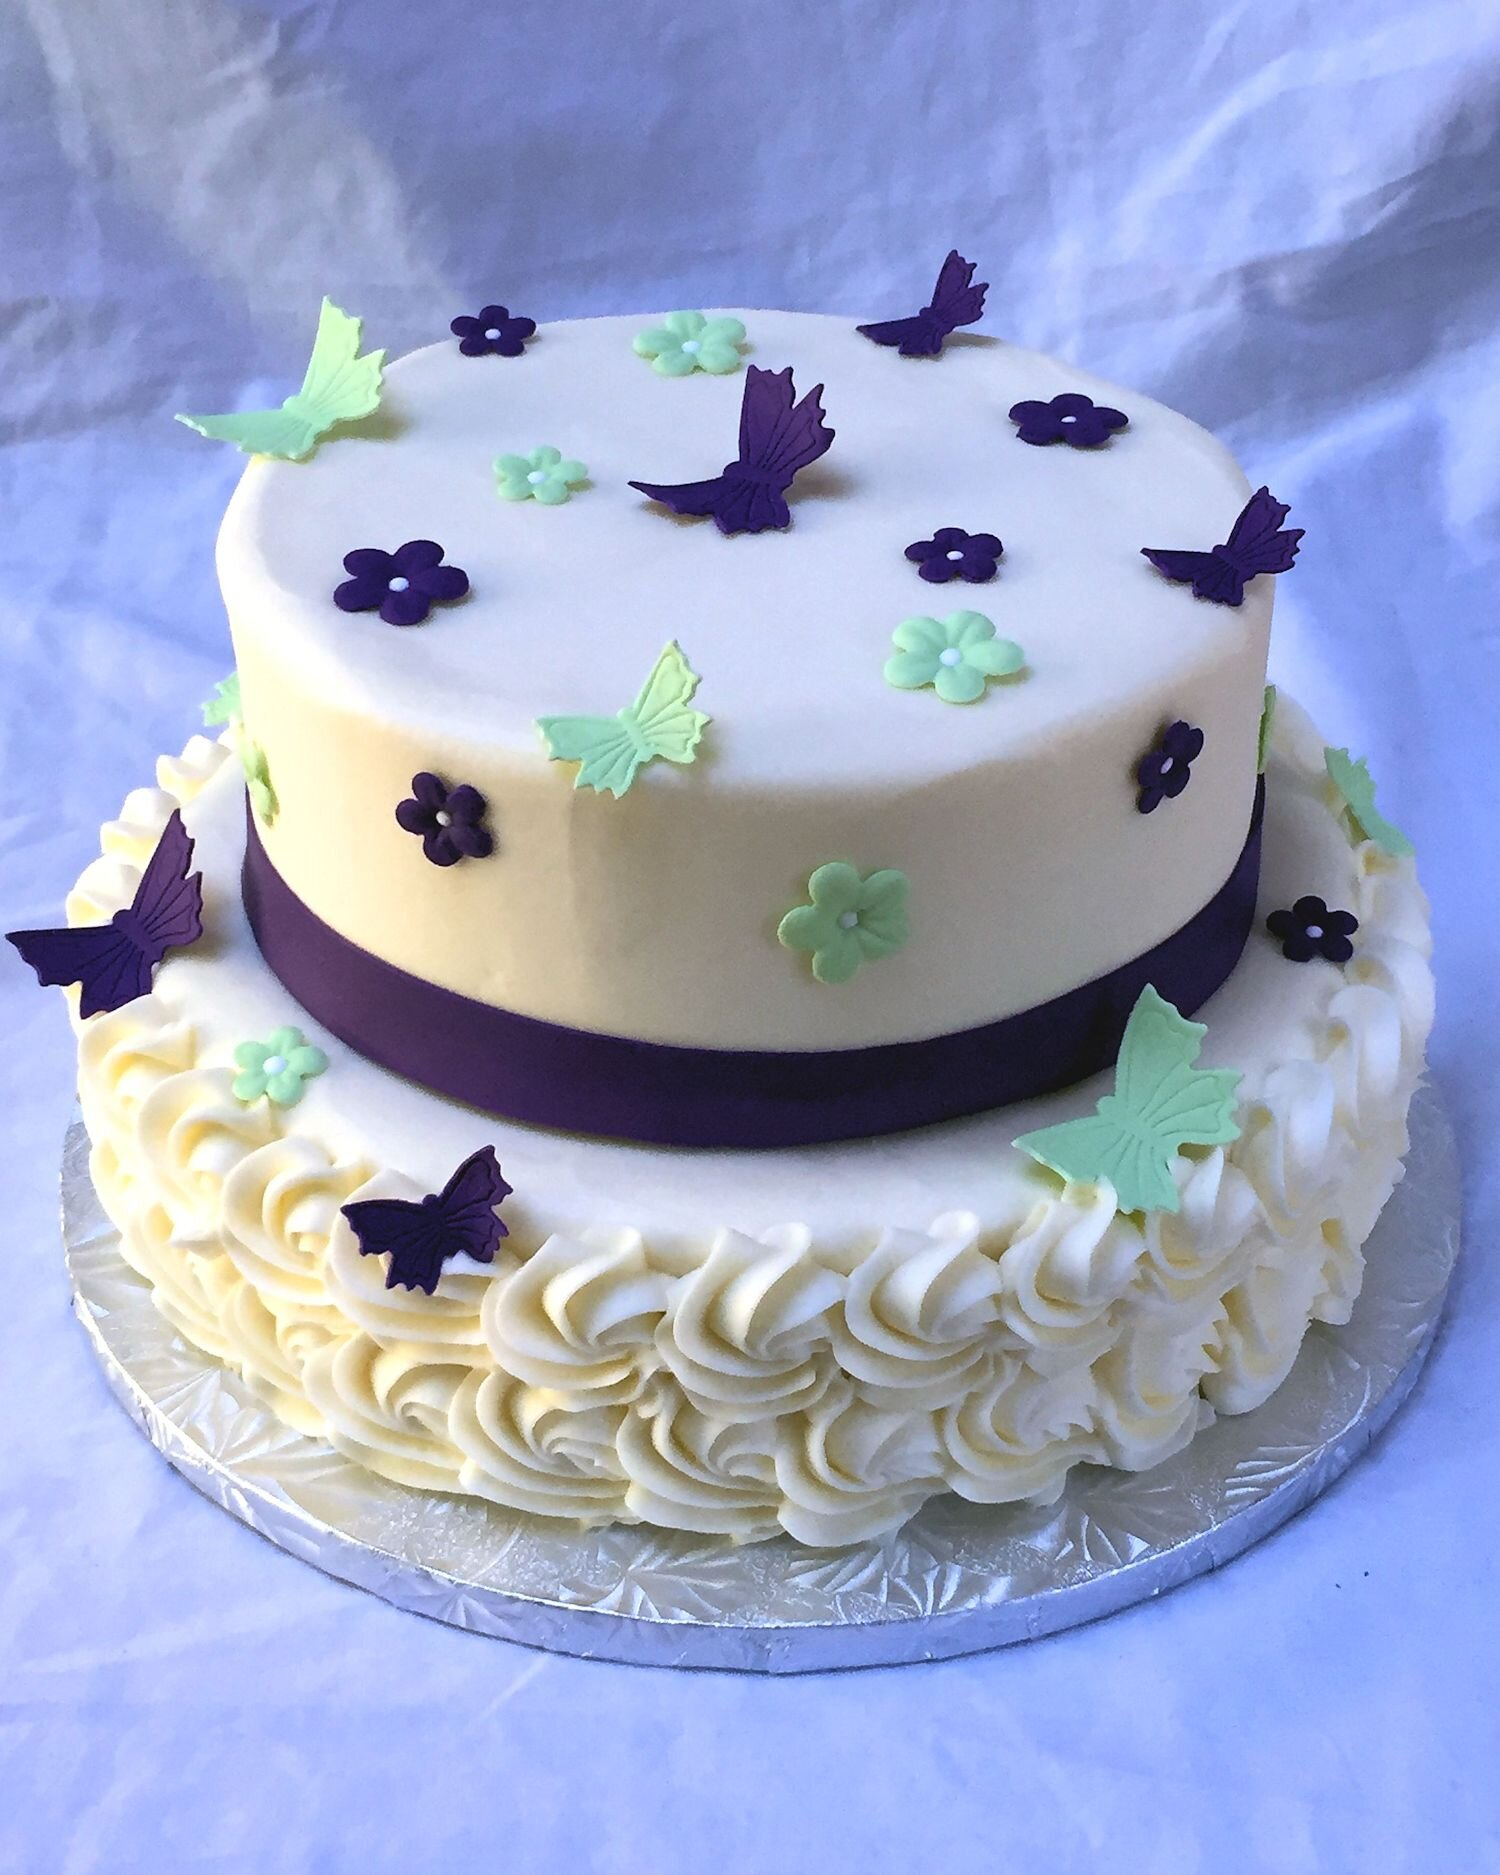 2 tiered cake - each tier has 2 layers of cake and a layer of filling inside.